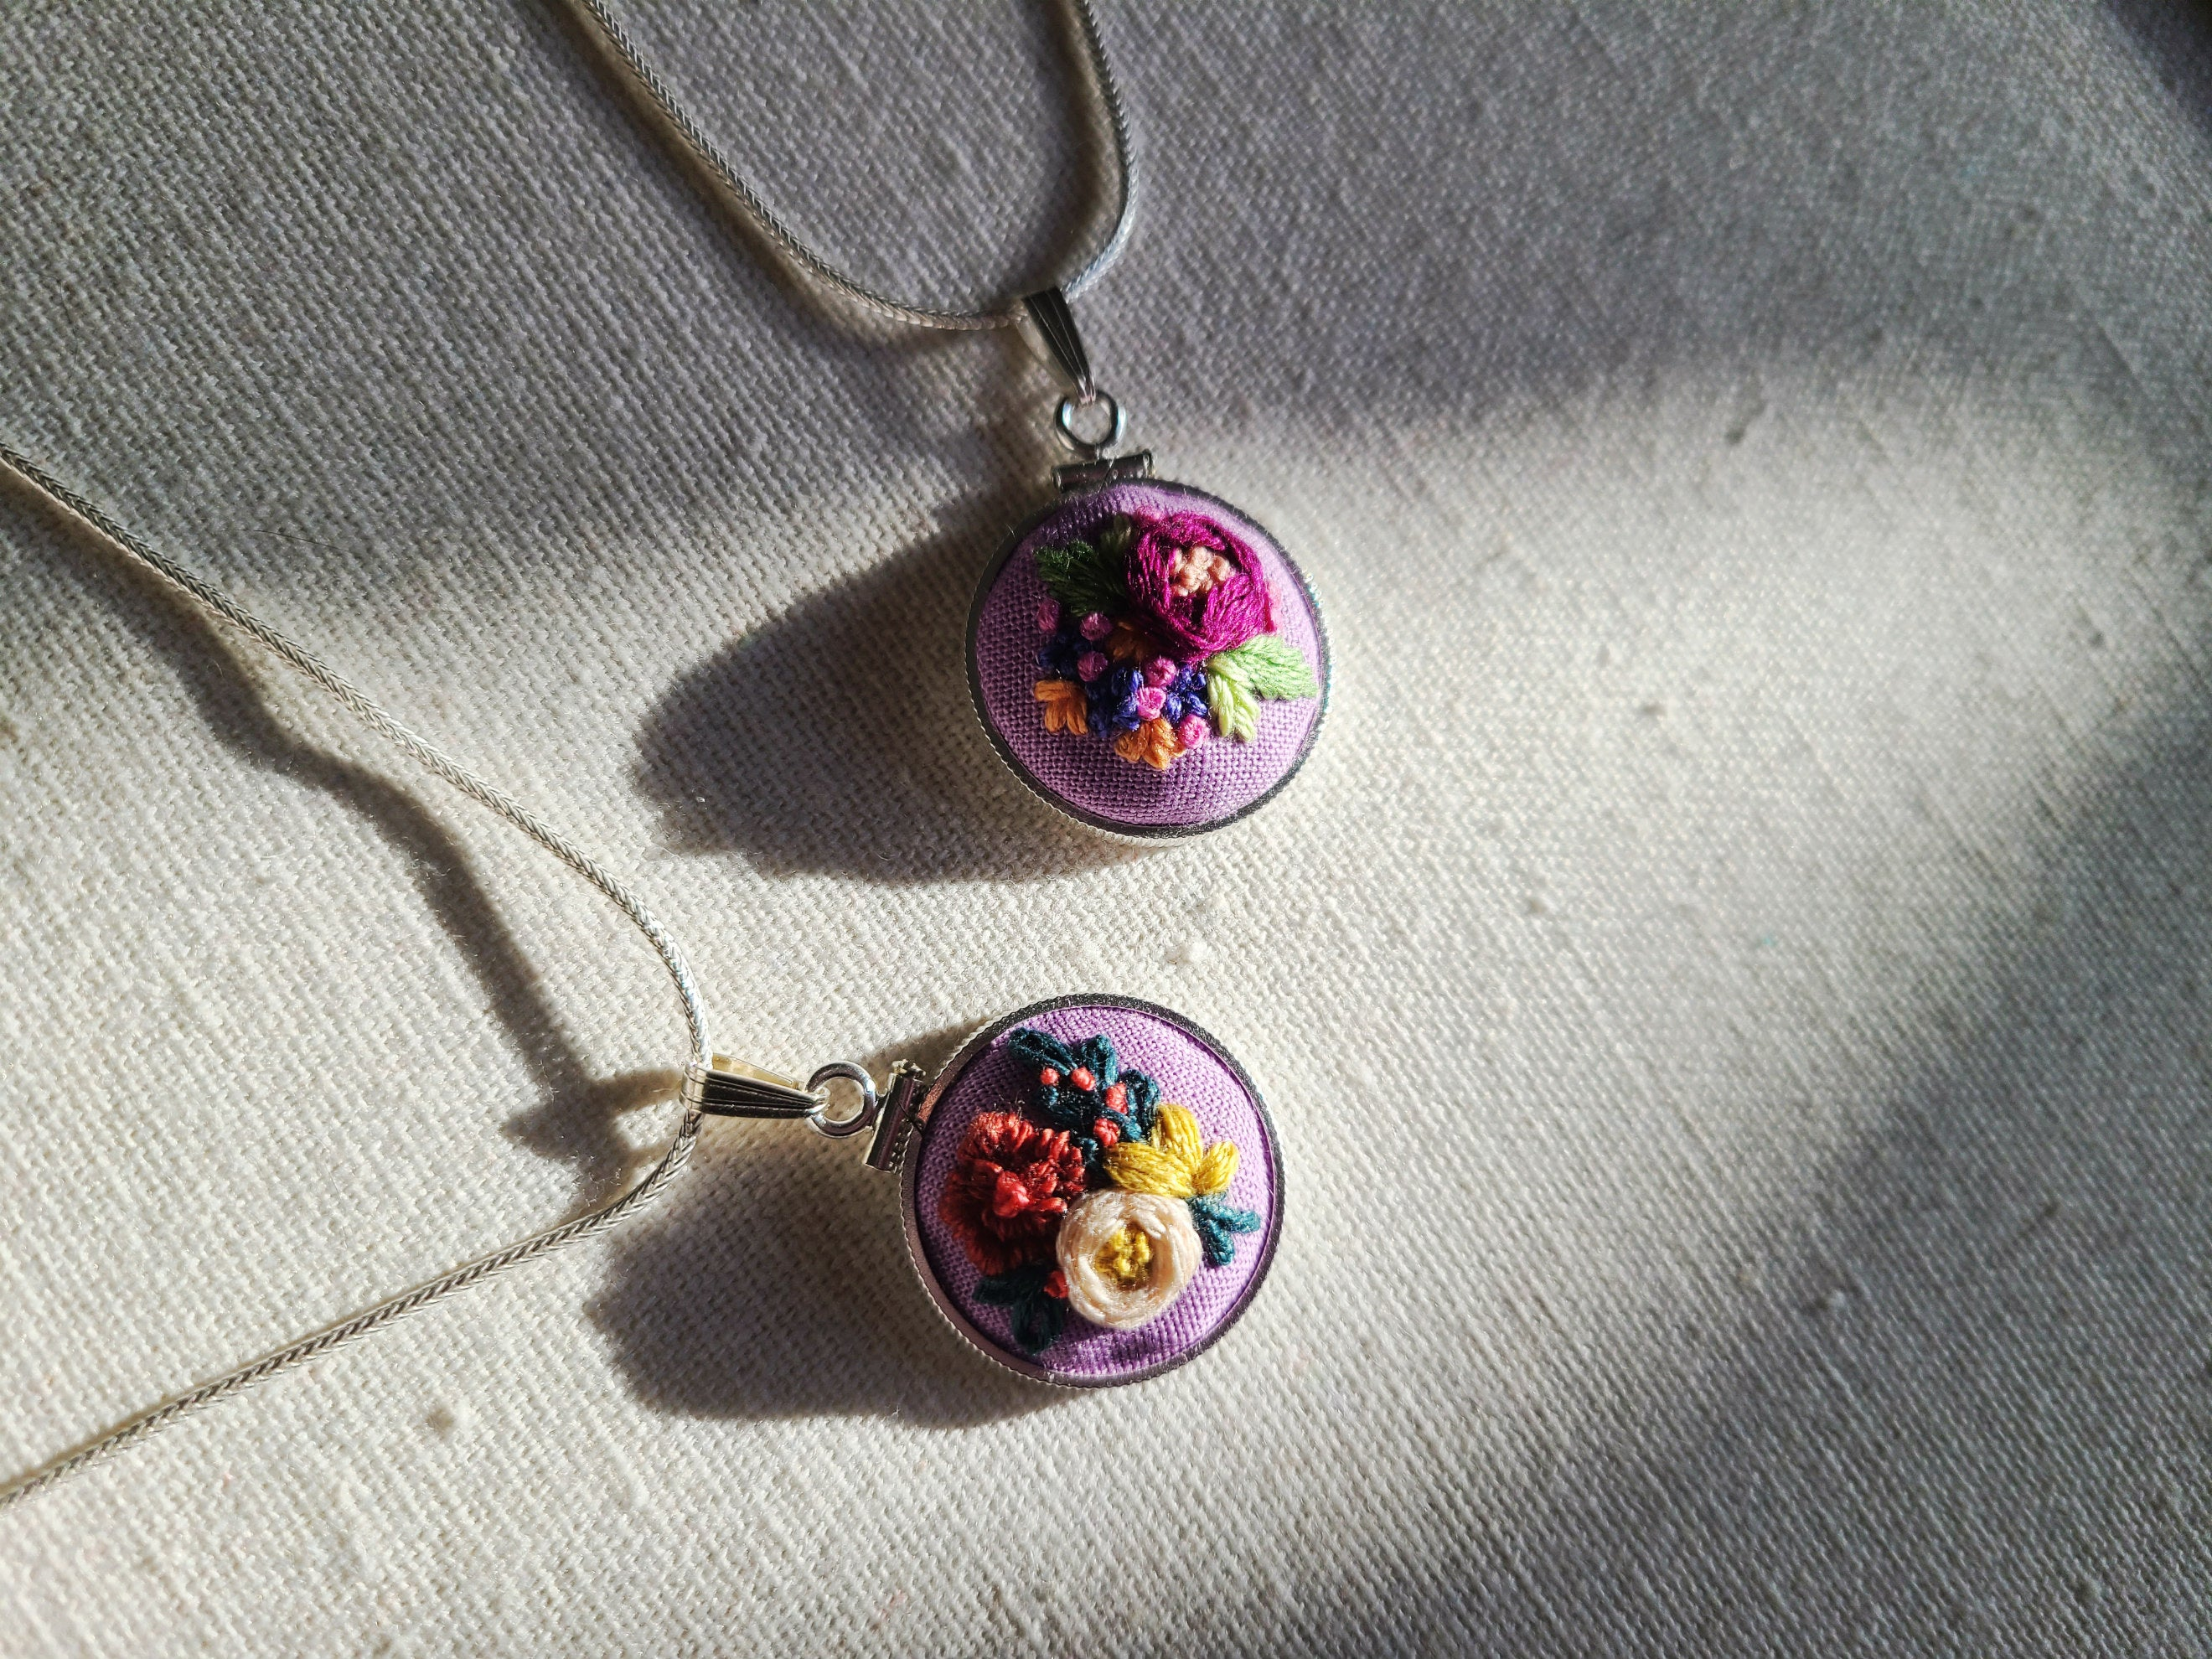 Magenta Peony with Indigo and Orange Flowers Hand Embroidered Sterling Silver Necklace - Little Love Parcels